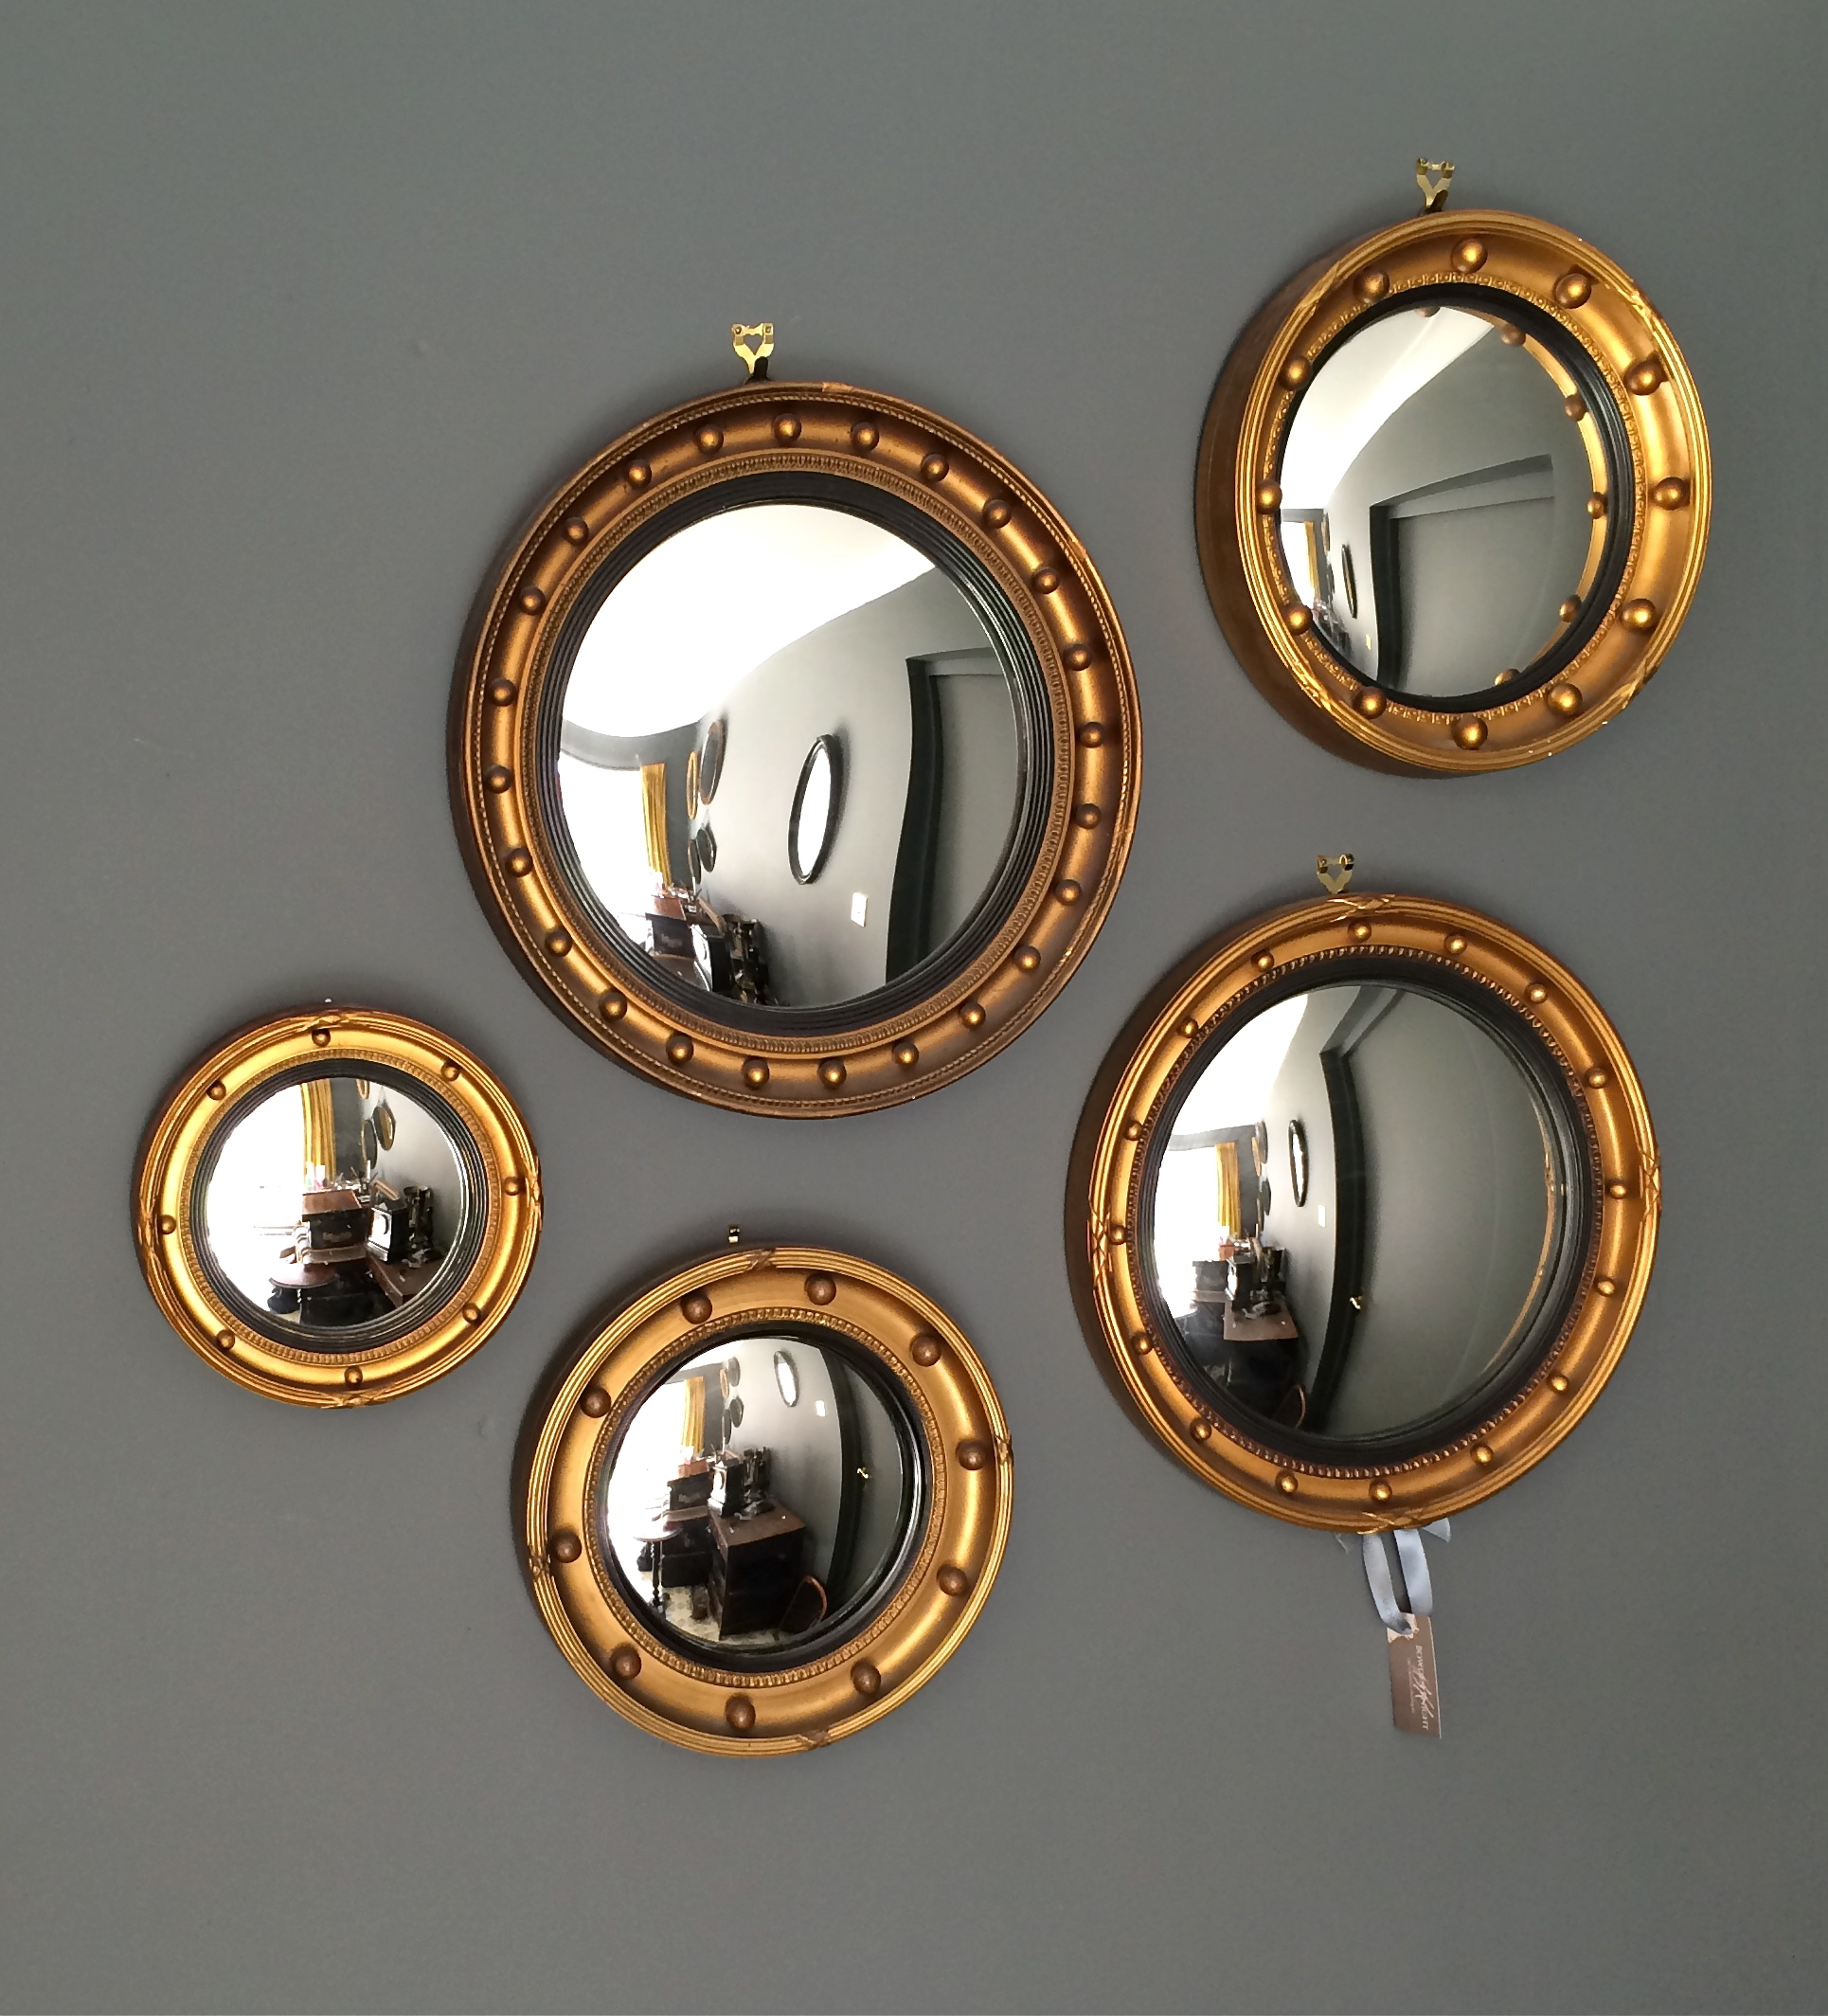 15 Best Decorative Convex Mirrors Mirror Ideas